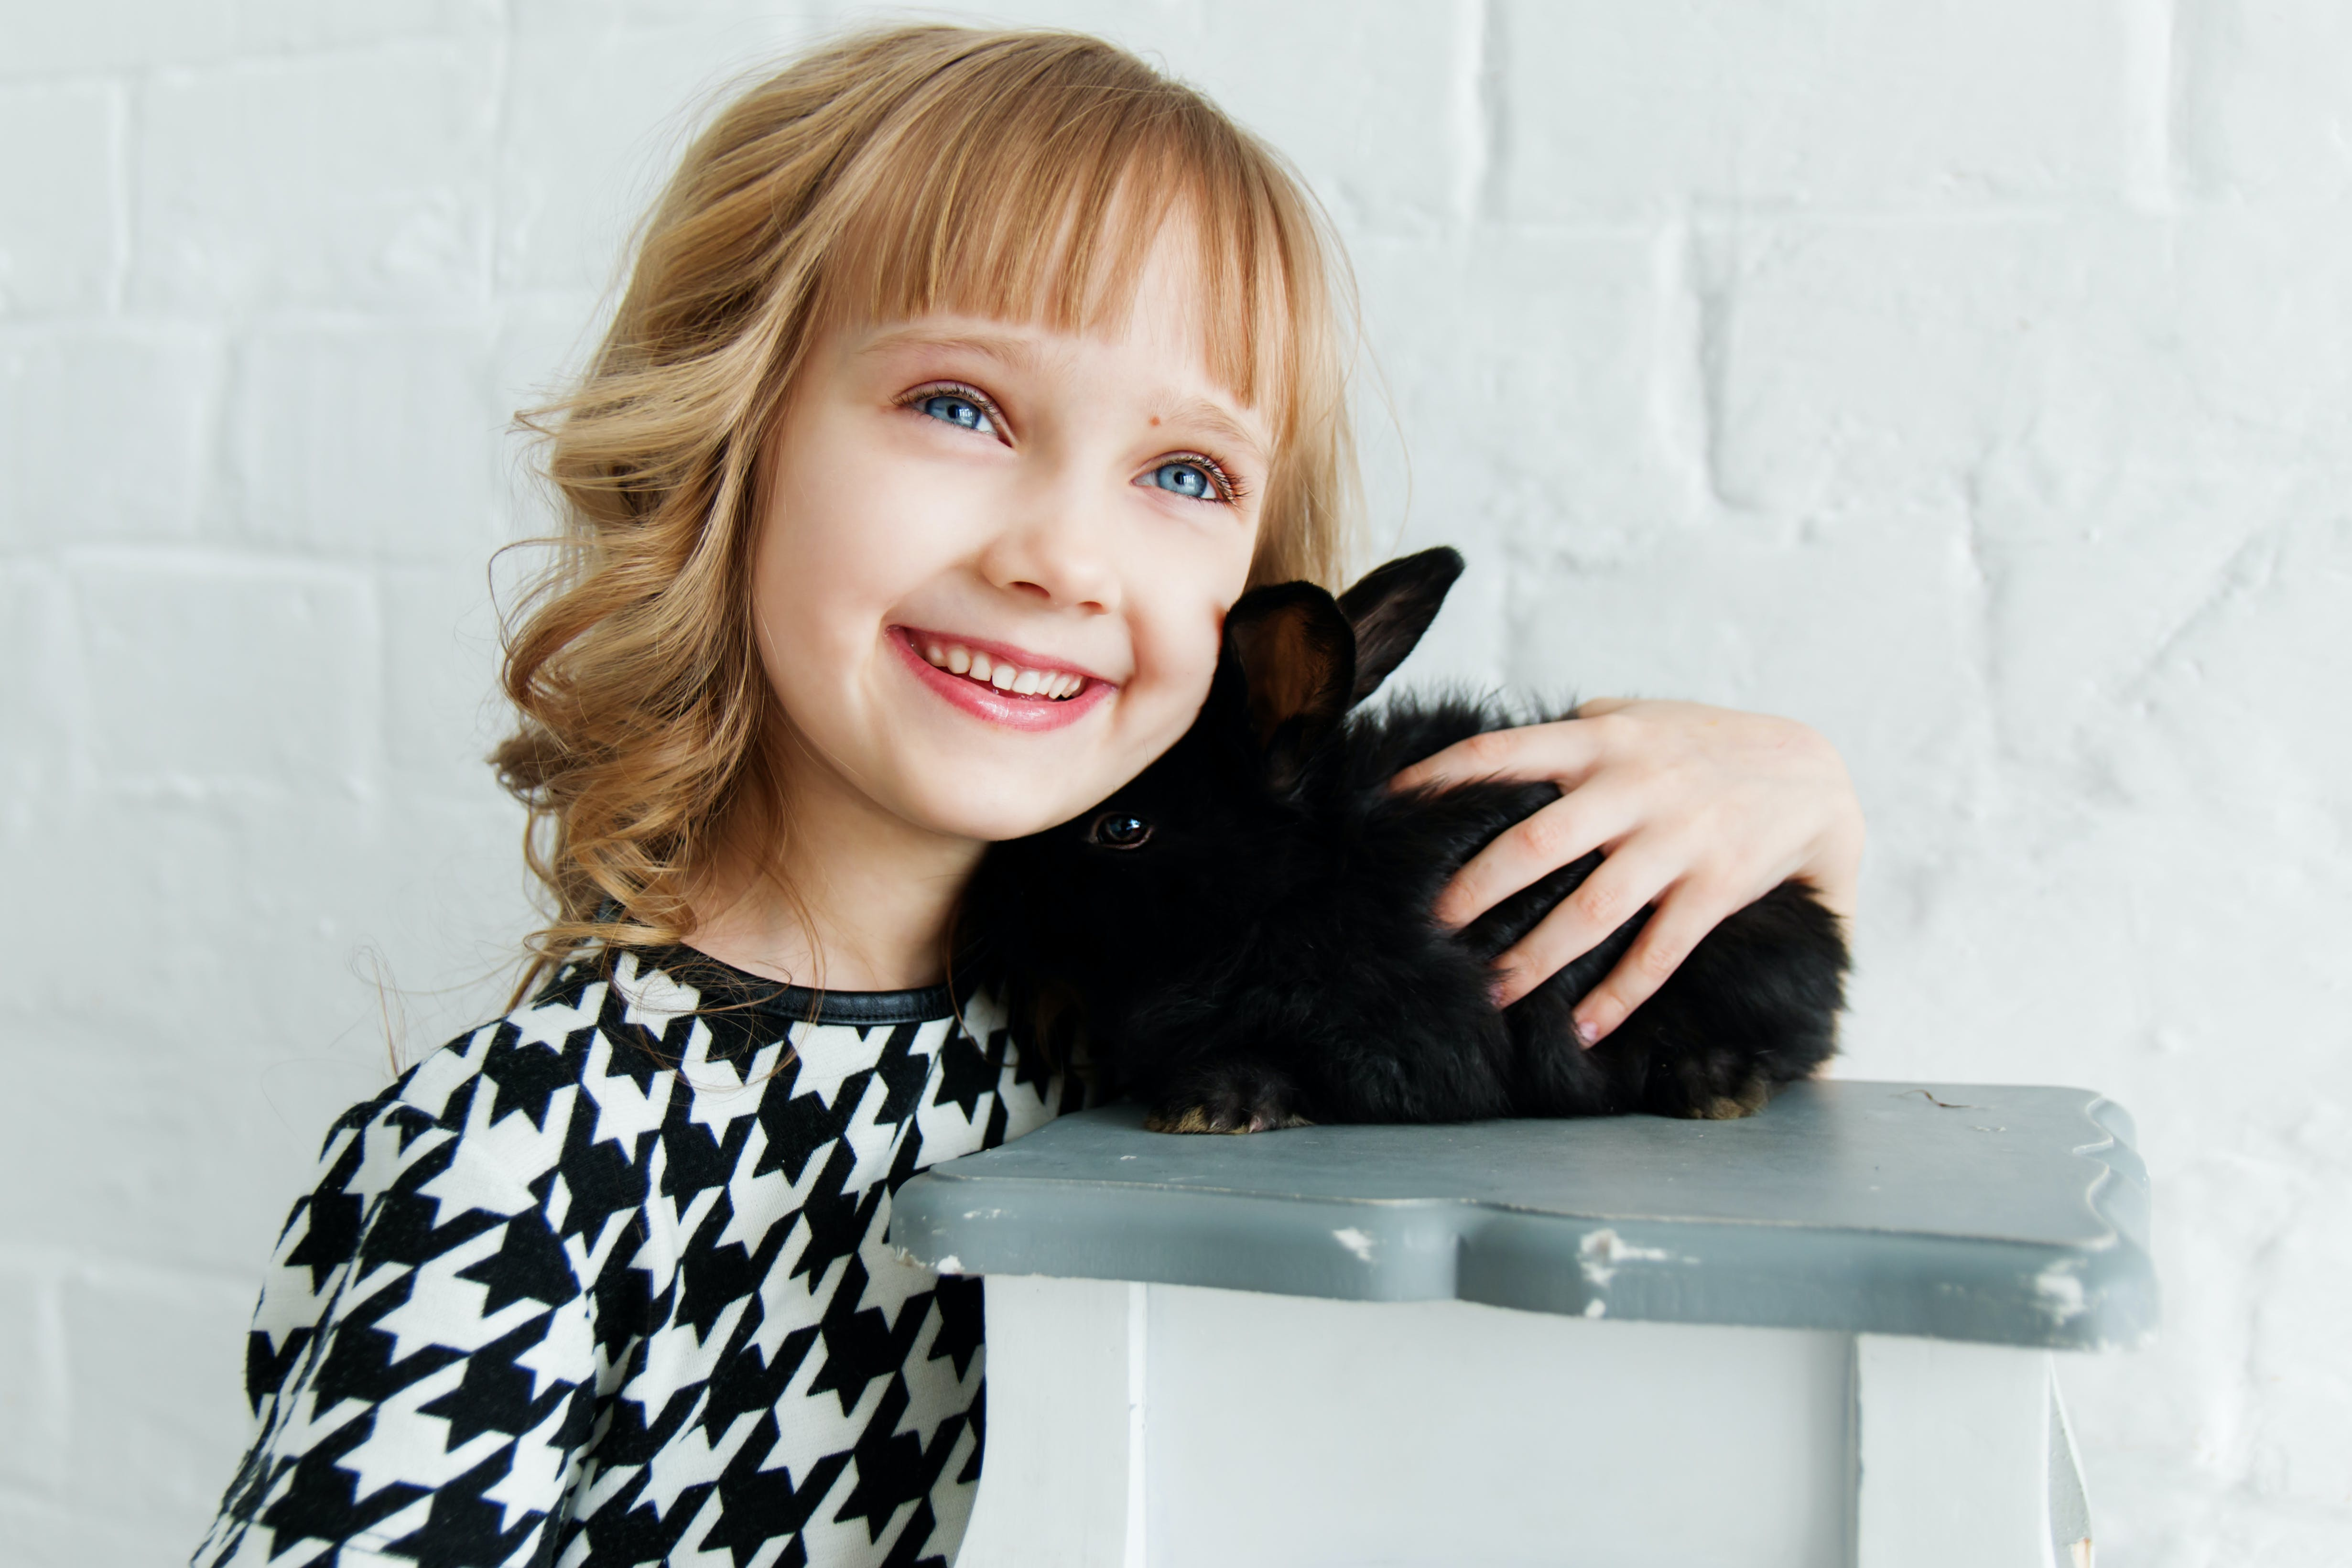 Girl Holding Black Rabbit